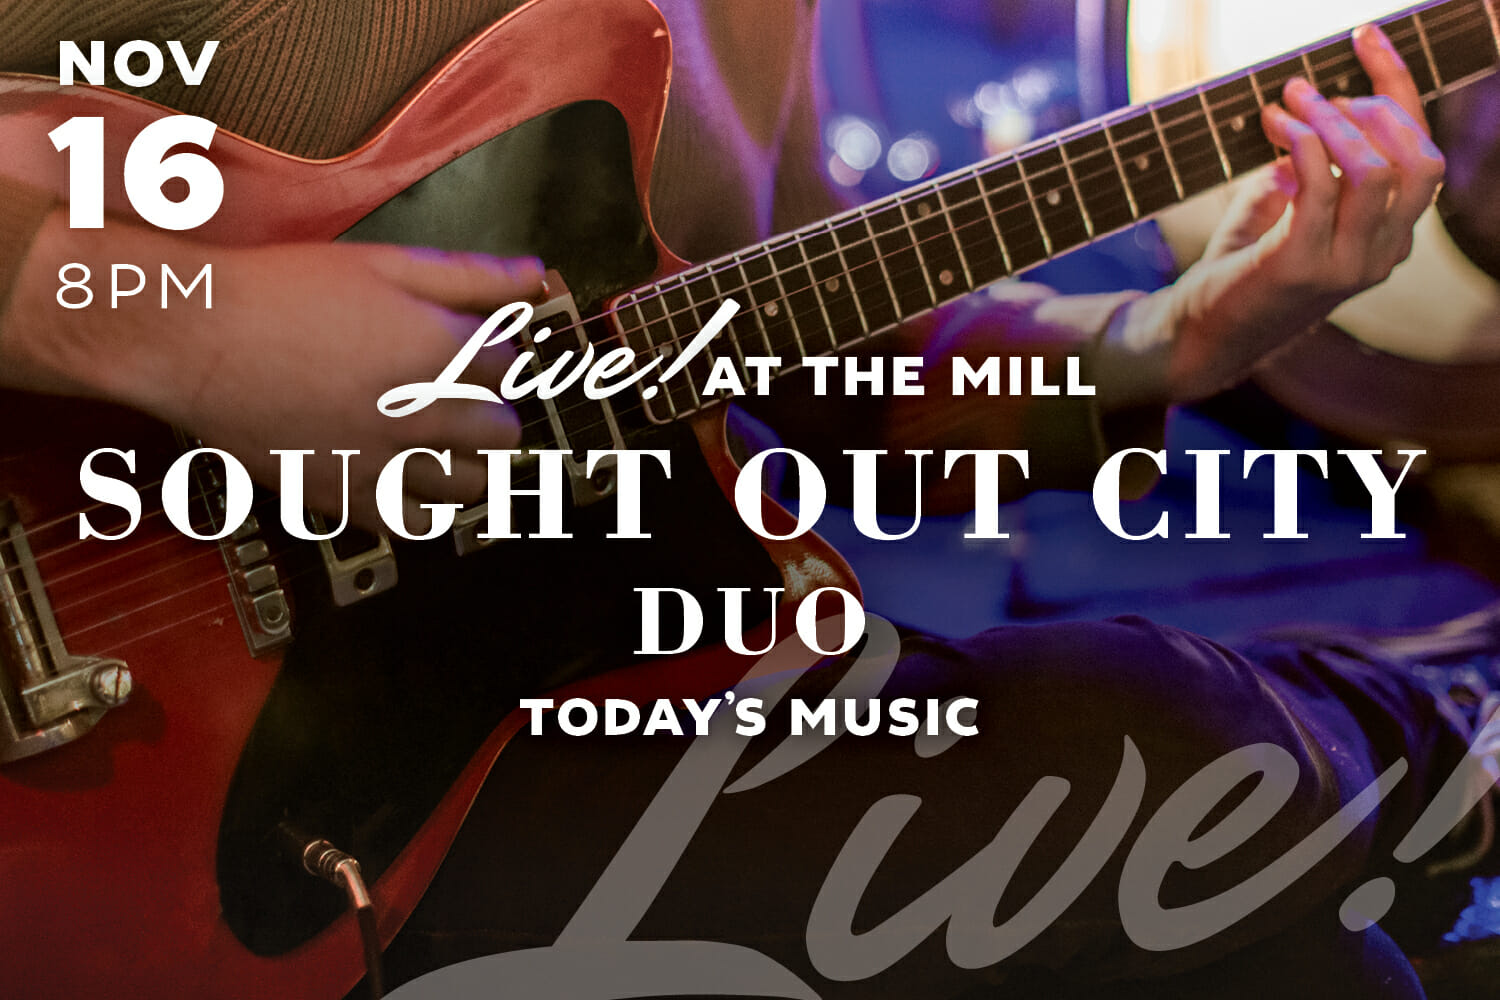 Live Music with Sought Out City DUo at The Mill in Hershey